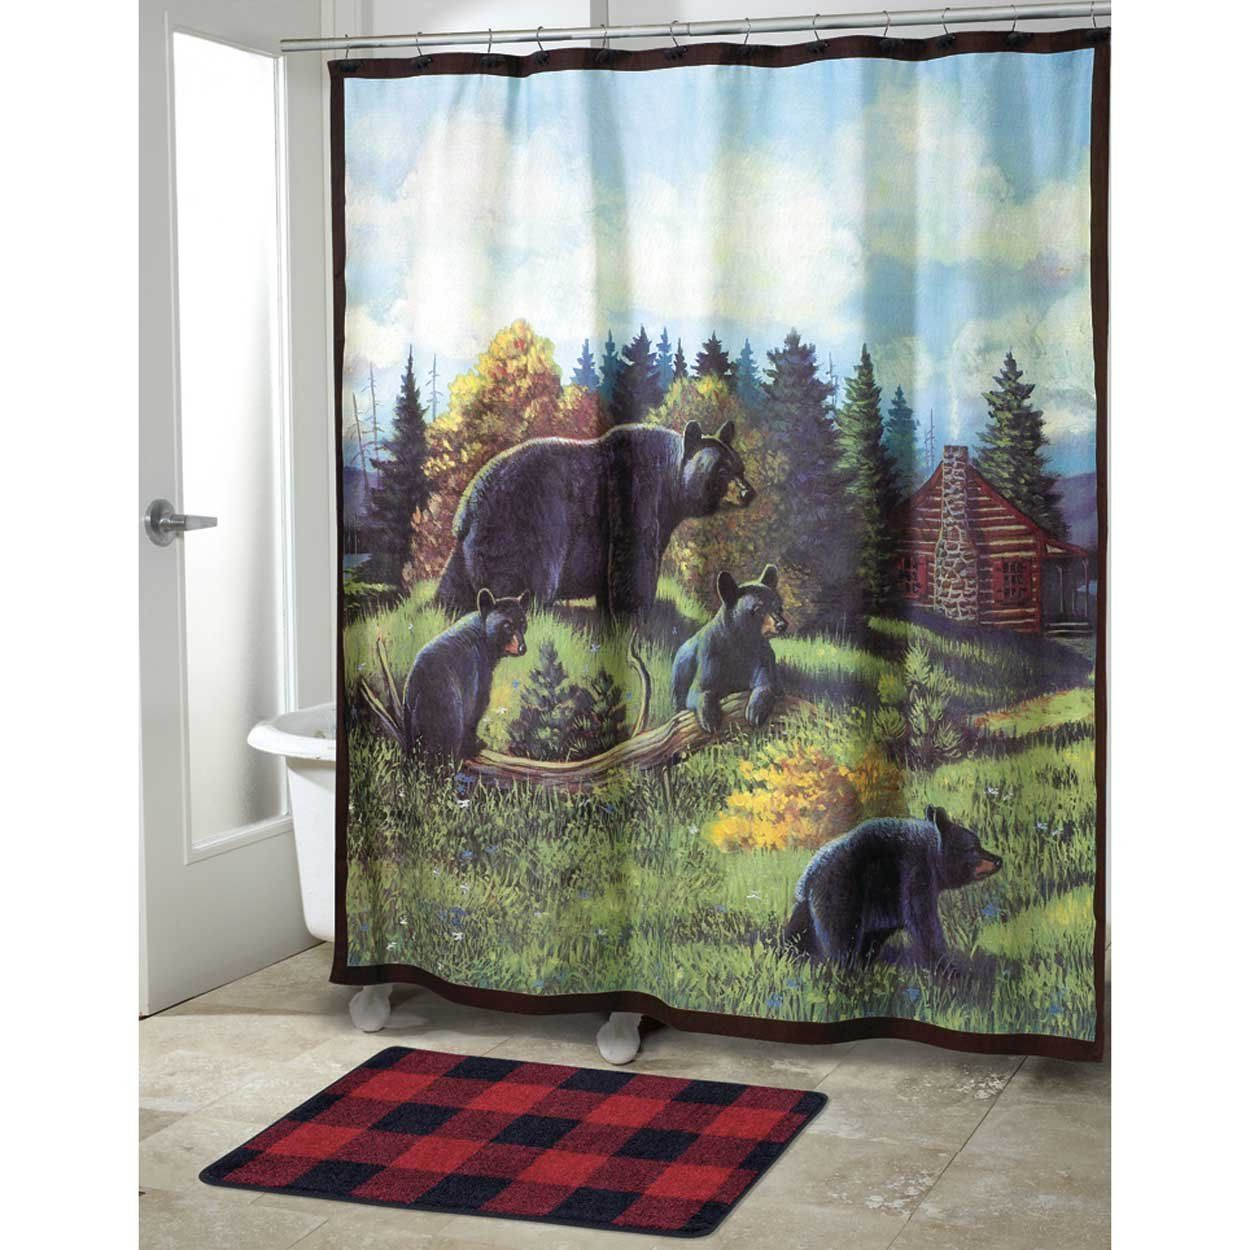 Black Bear Lodge Shower Curtain Collection | Black bear lodge, Black bear decor, Fabric shower ...